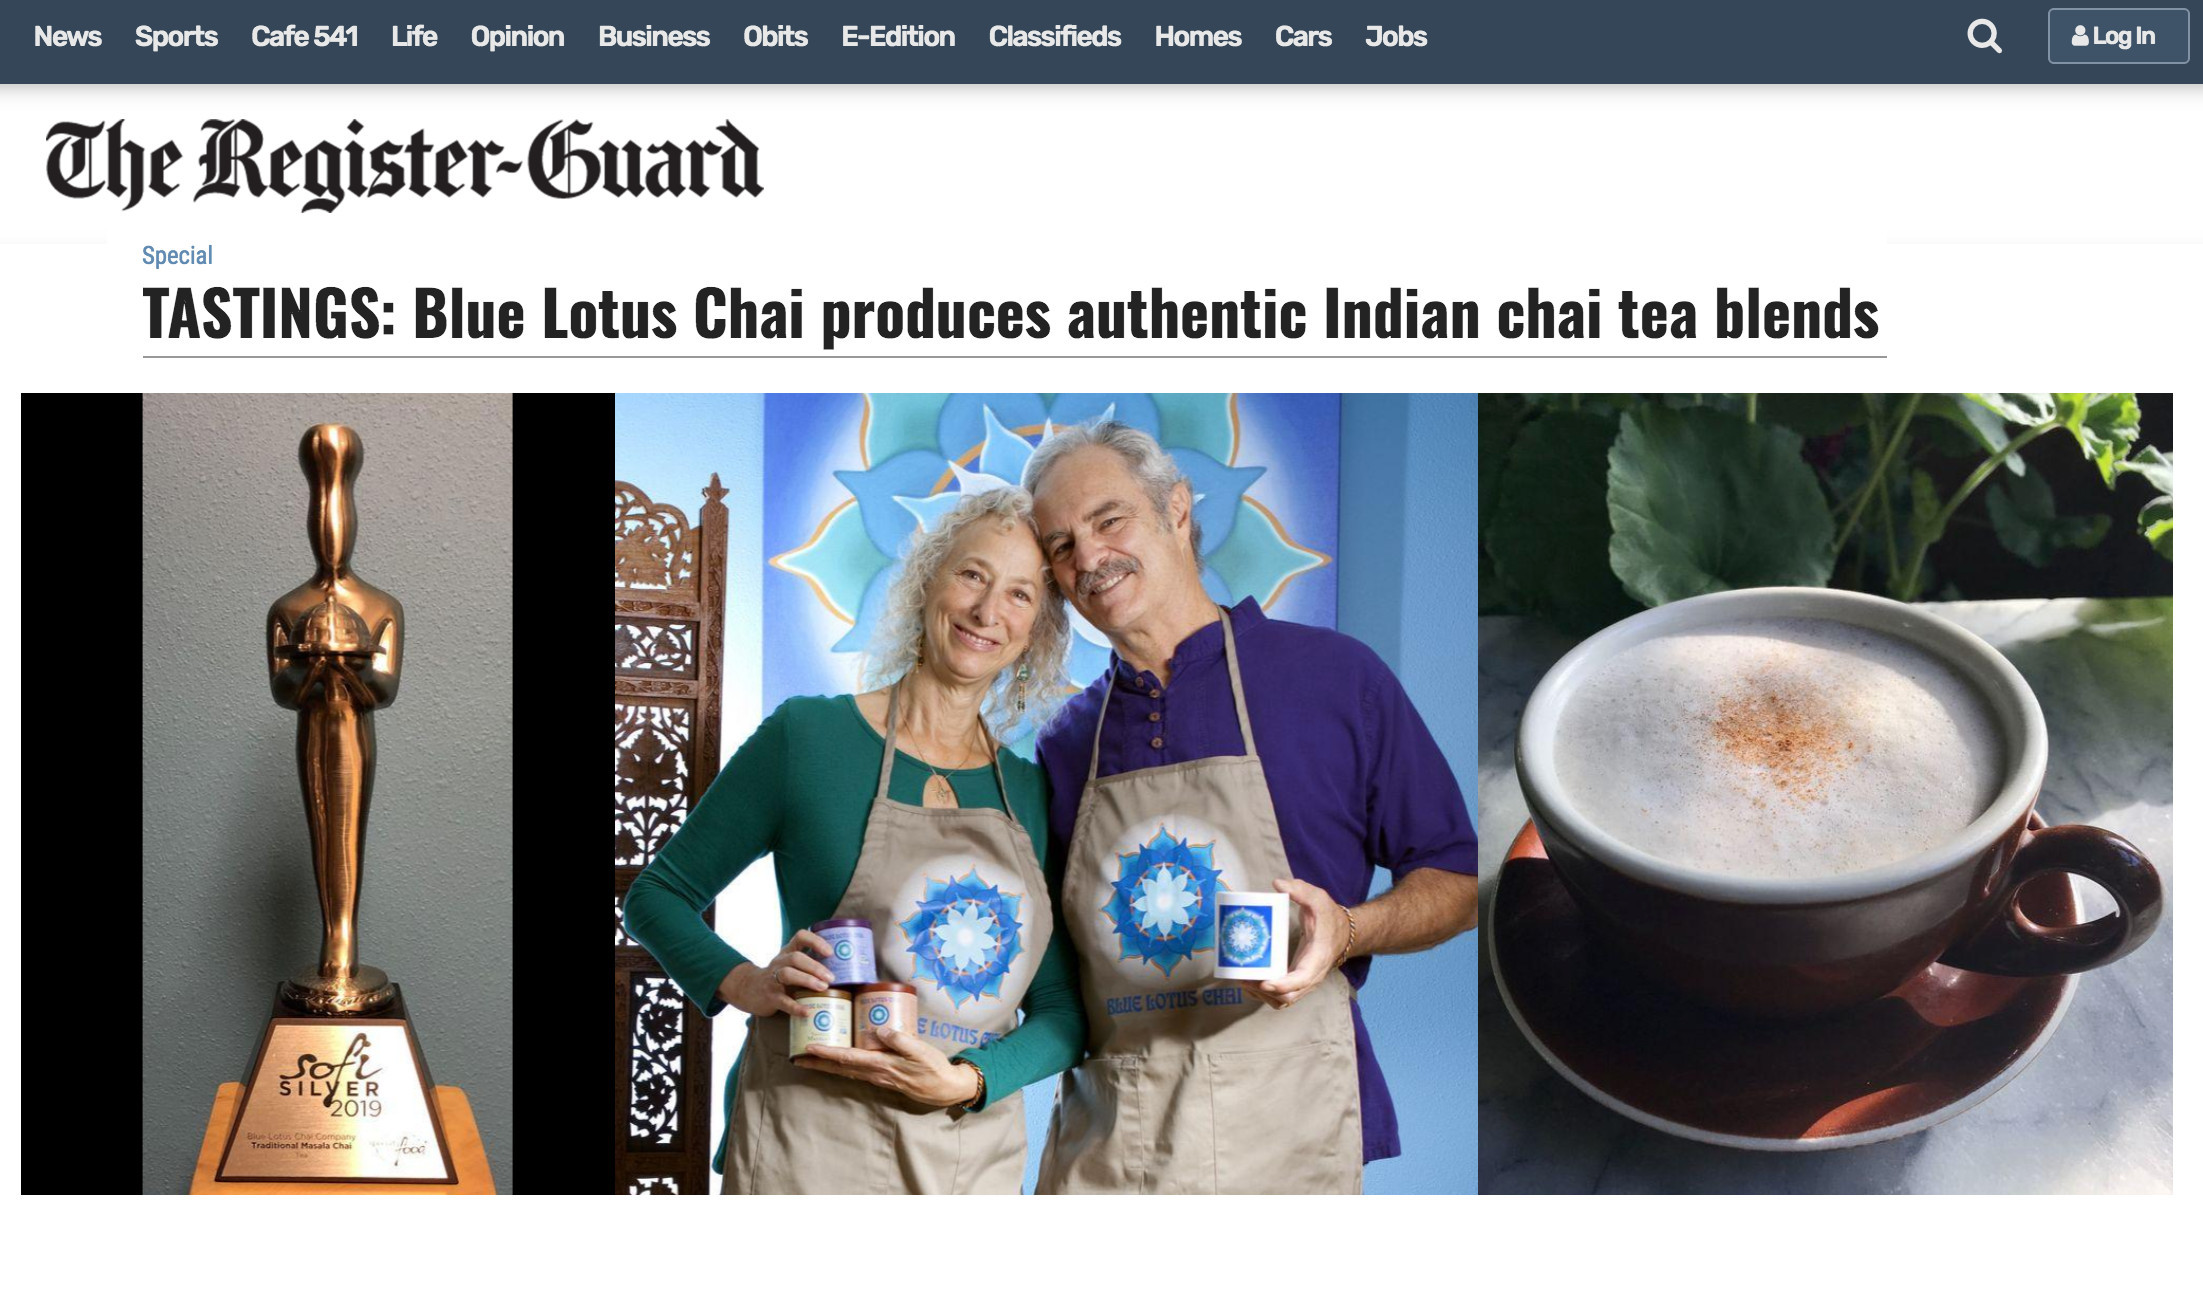 Blue Lotus Chai featured in Register Guard